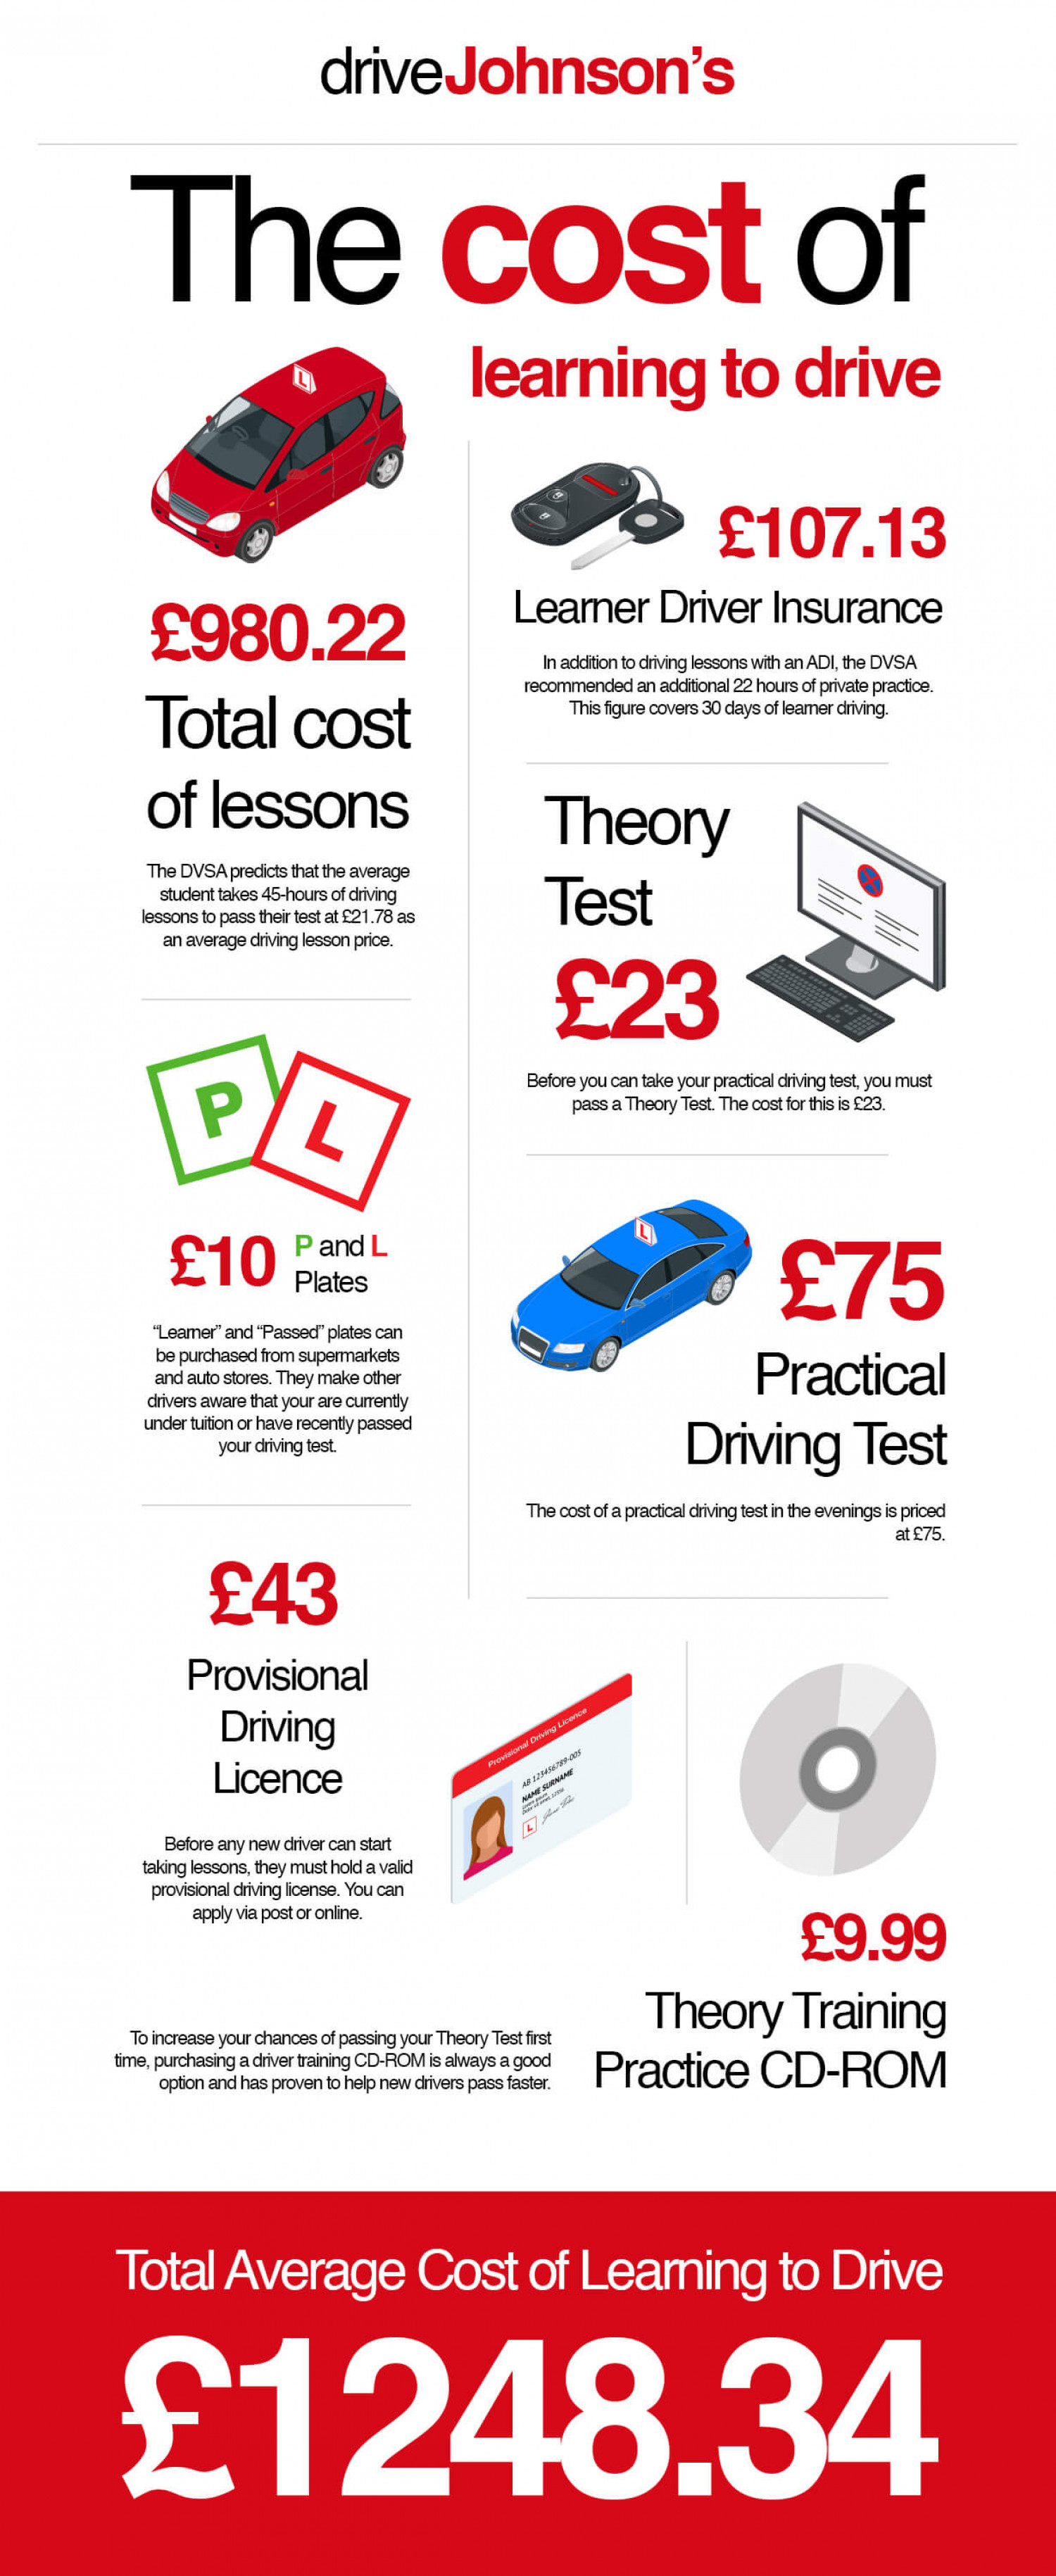 The Costs of Learning to Drive in the UK 2017 Infographic